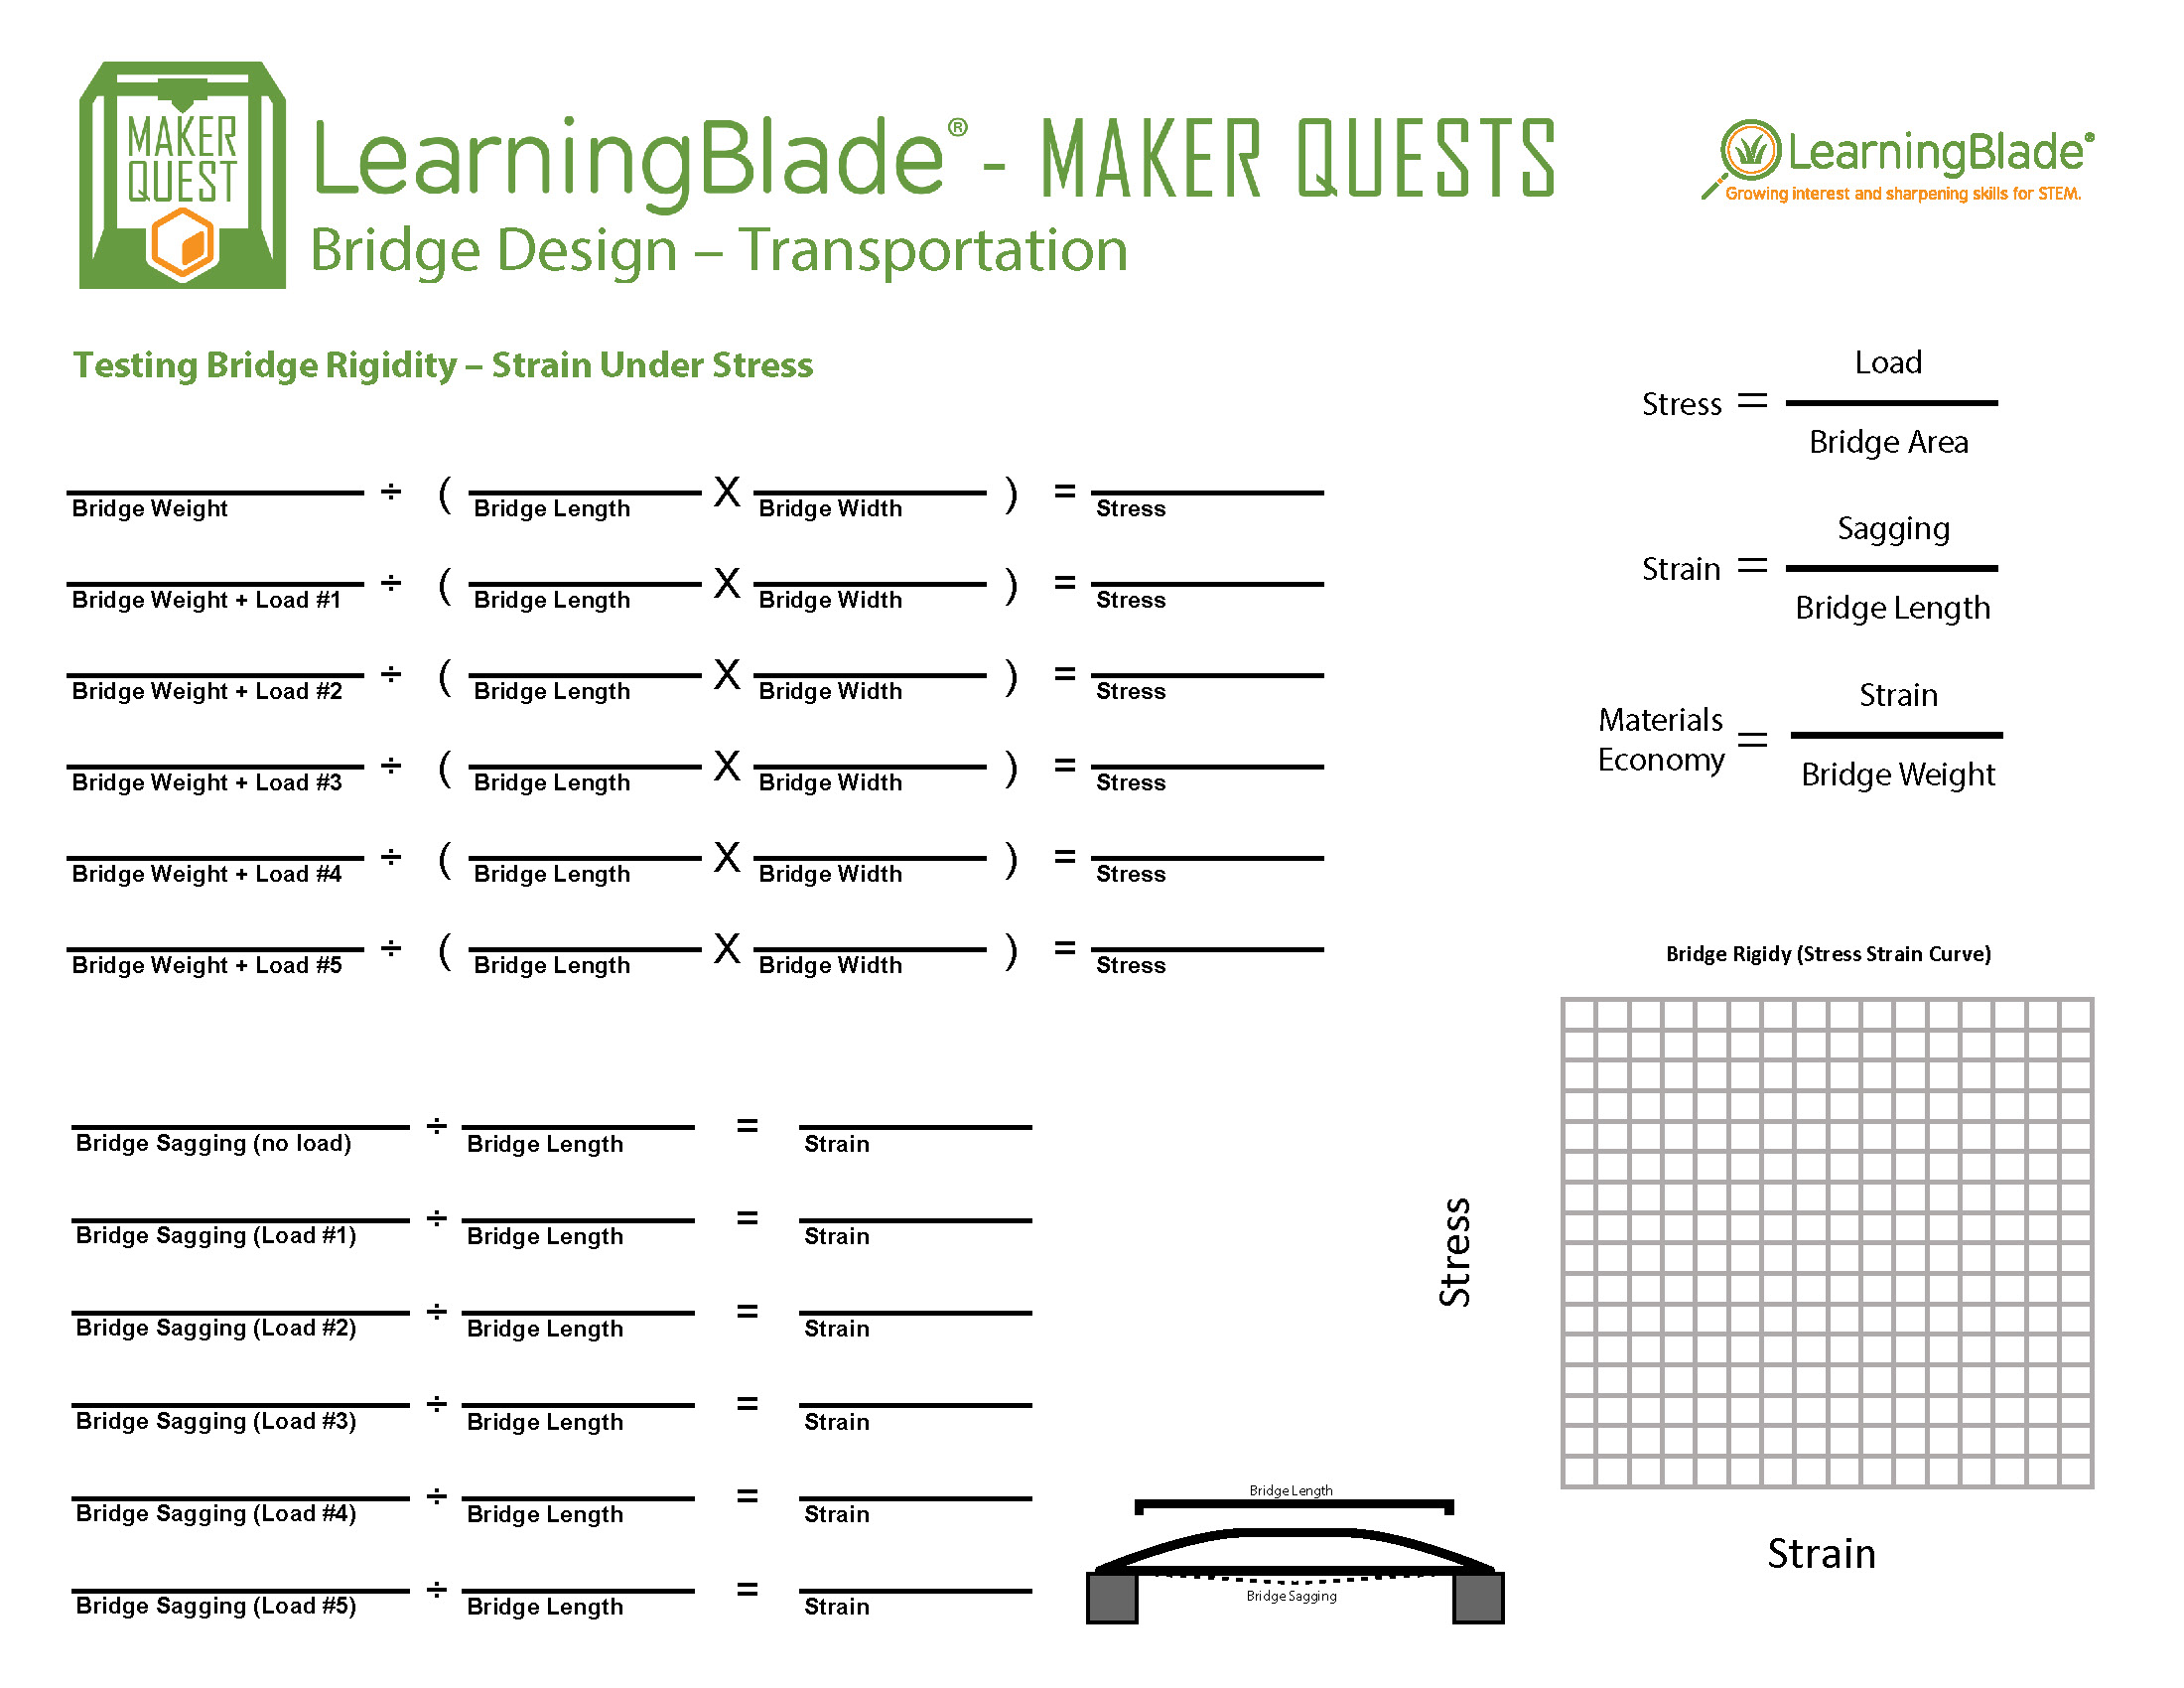 Learning Blade 3d Maker Quest